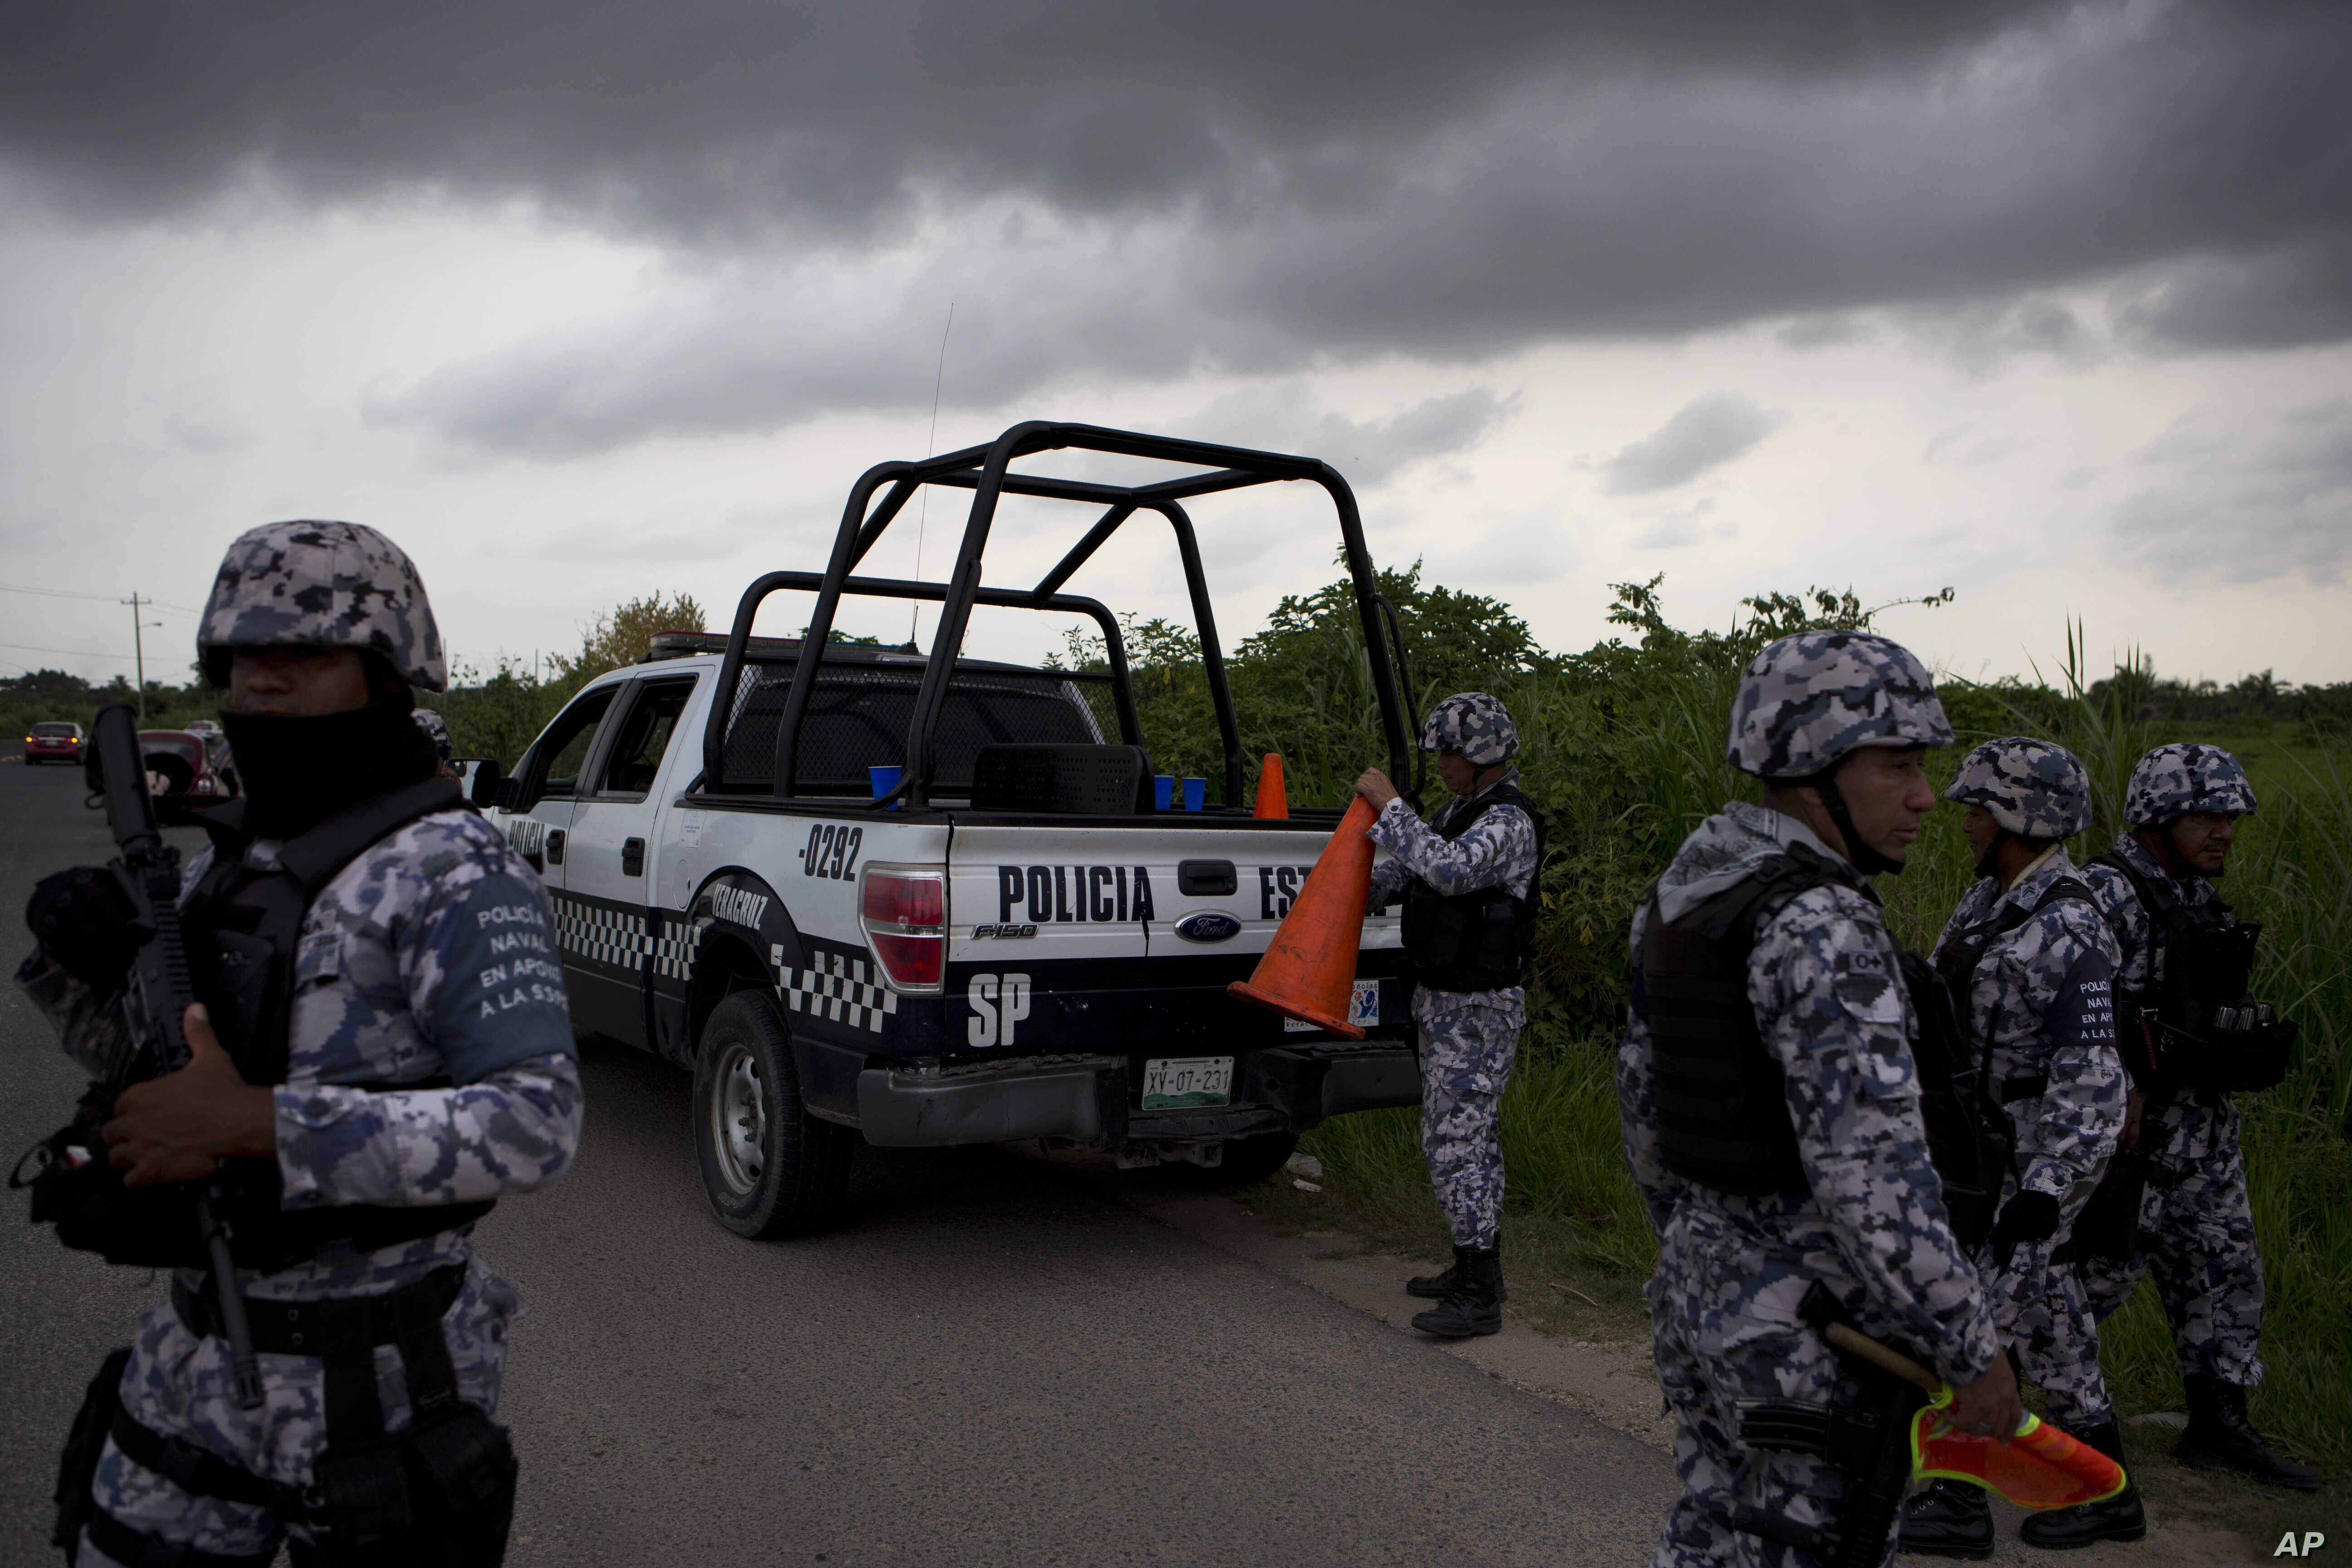 19 Dead in Resurgence of Mexican Drug Cartel Intimidation Killings